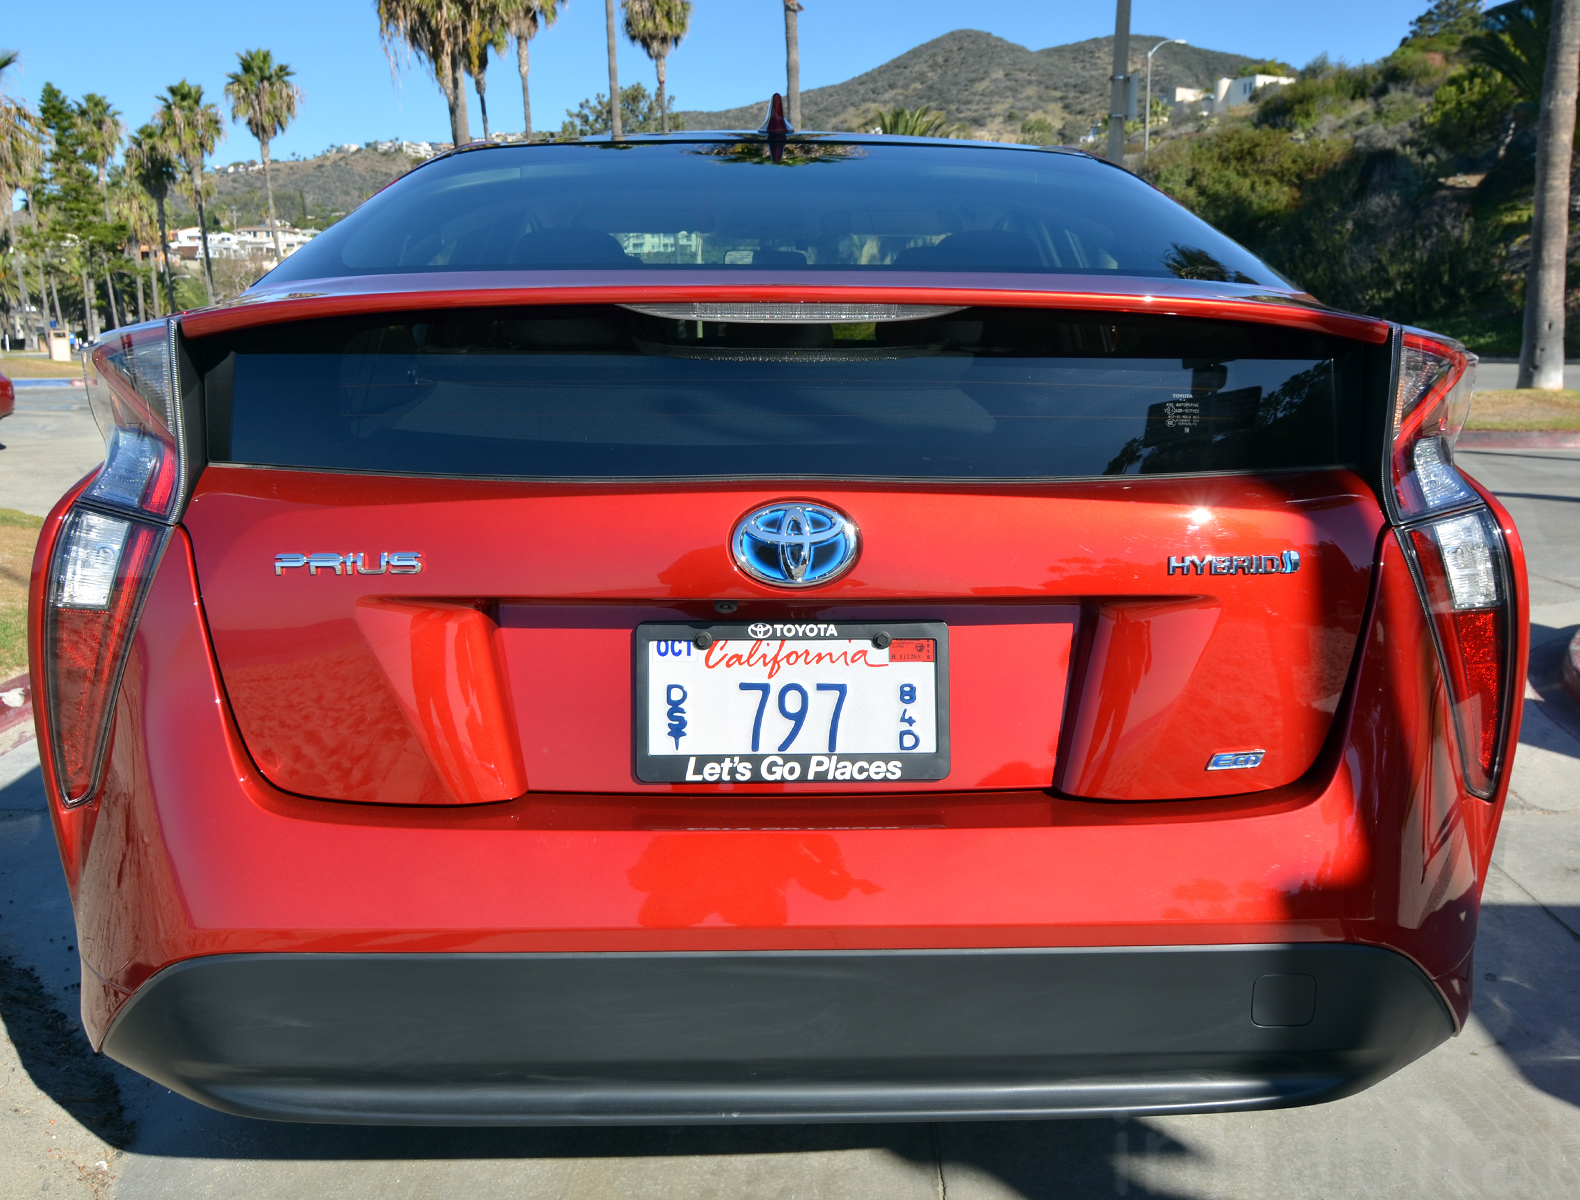 The 2016 Toyota Prius injects new life into the world's most popular hybrid car